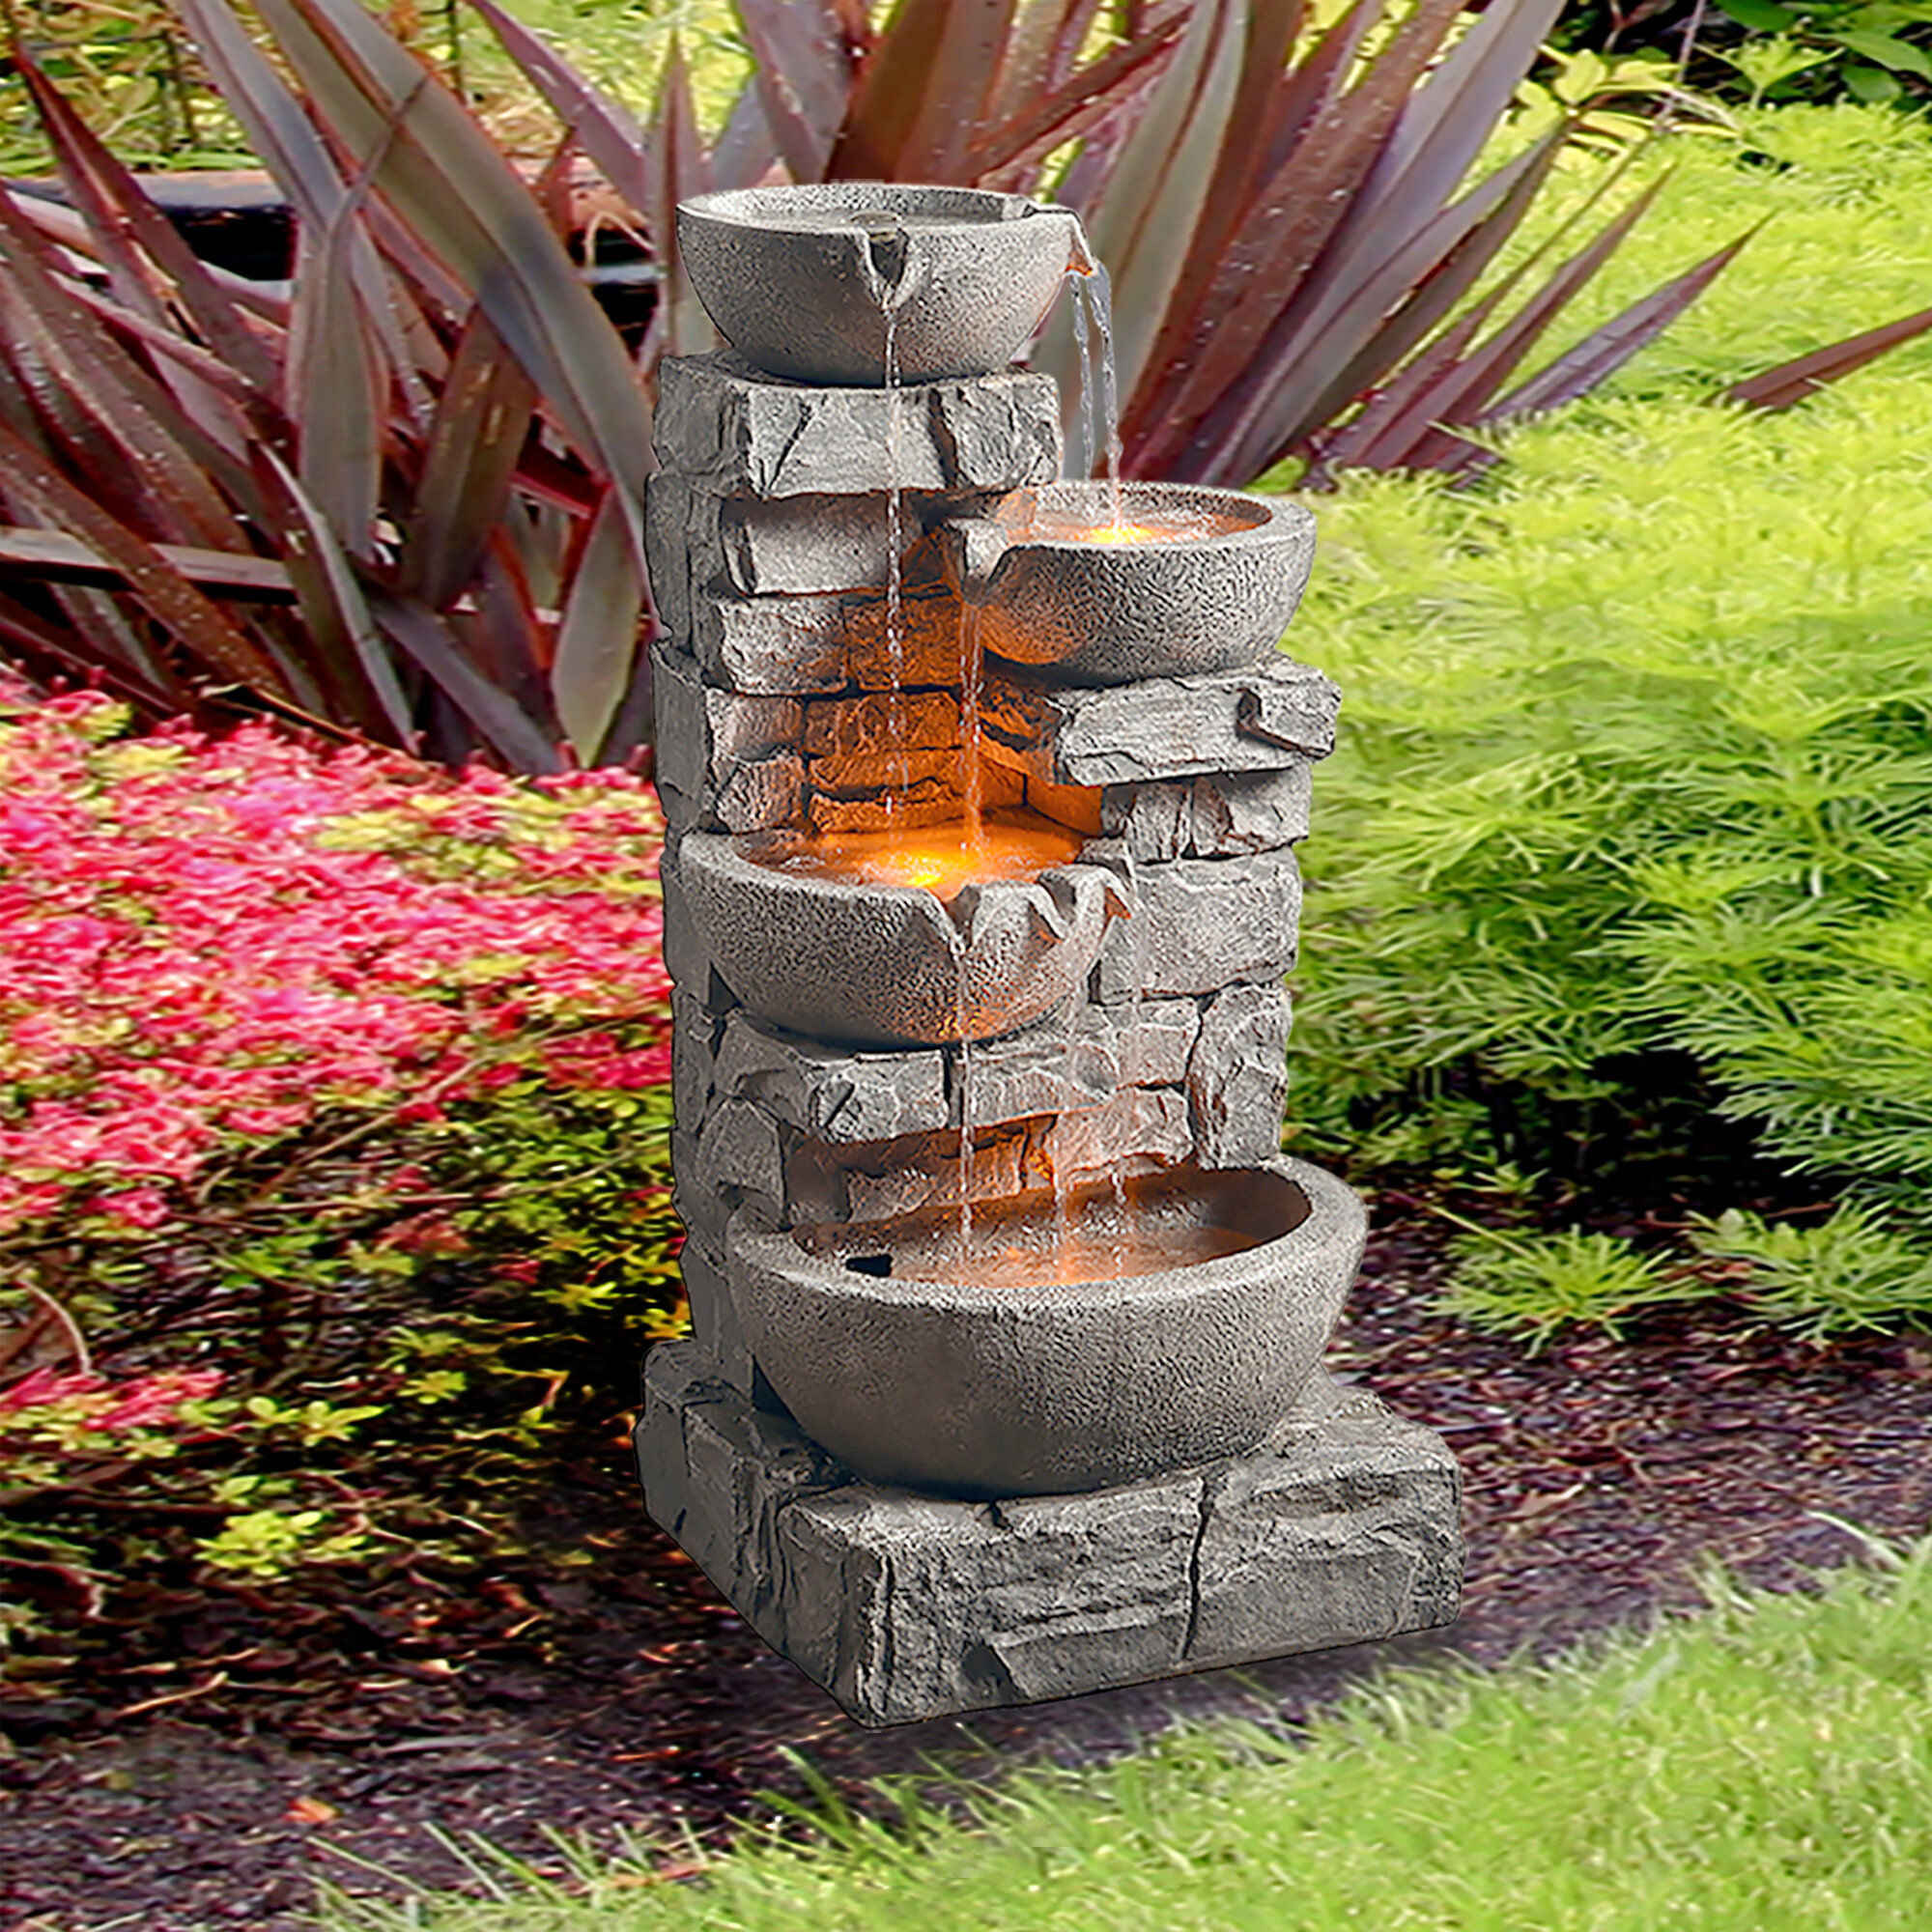 Outdoor Fountains From 19 99 Through 12 04 Wayfair